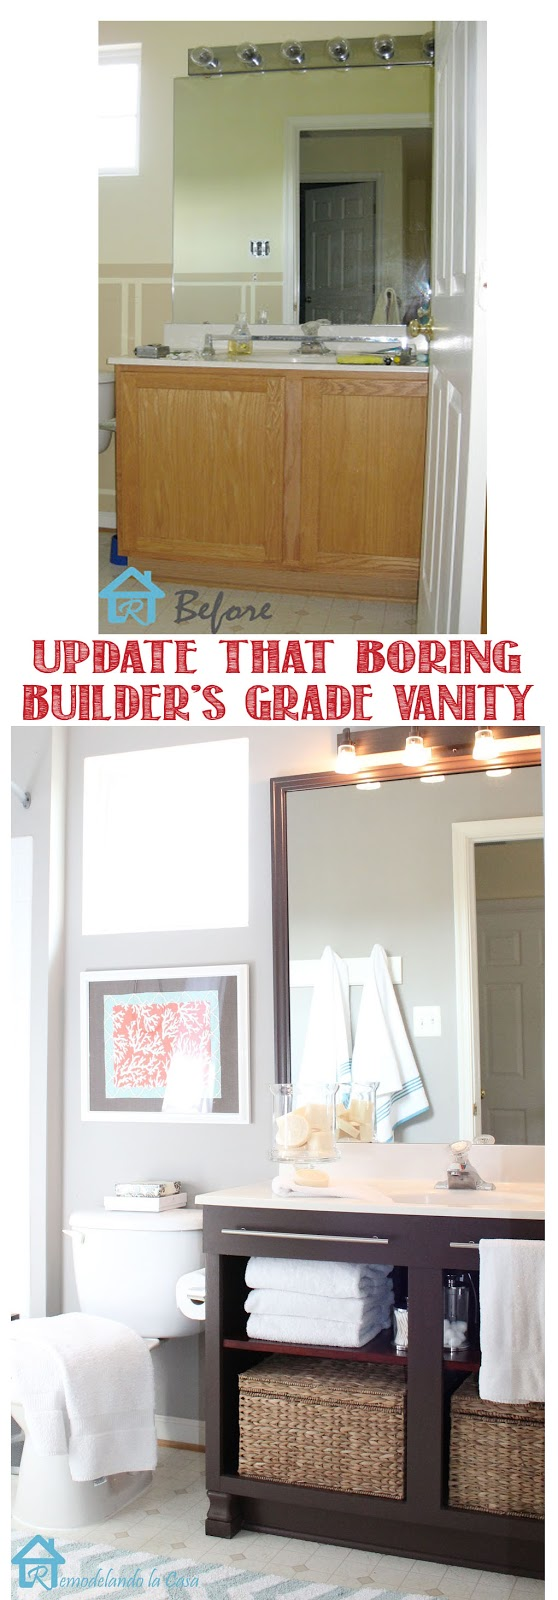 before and after of builder's grade vanity makeover